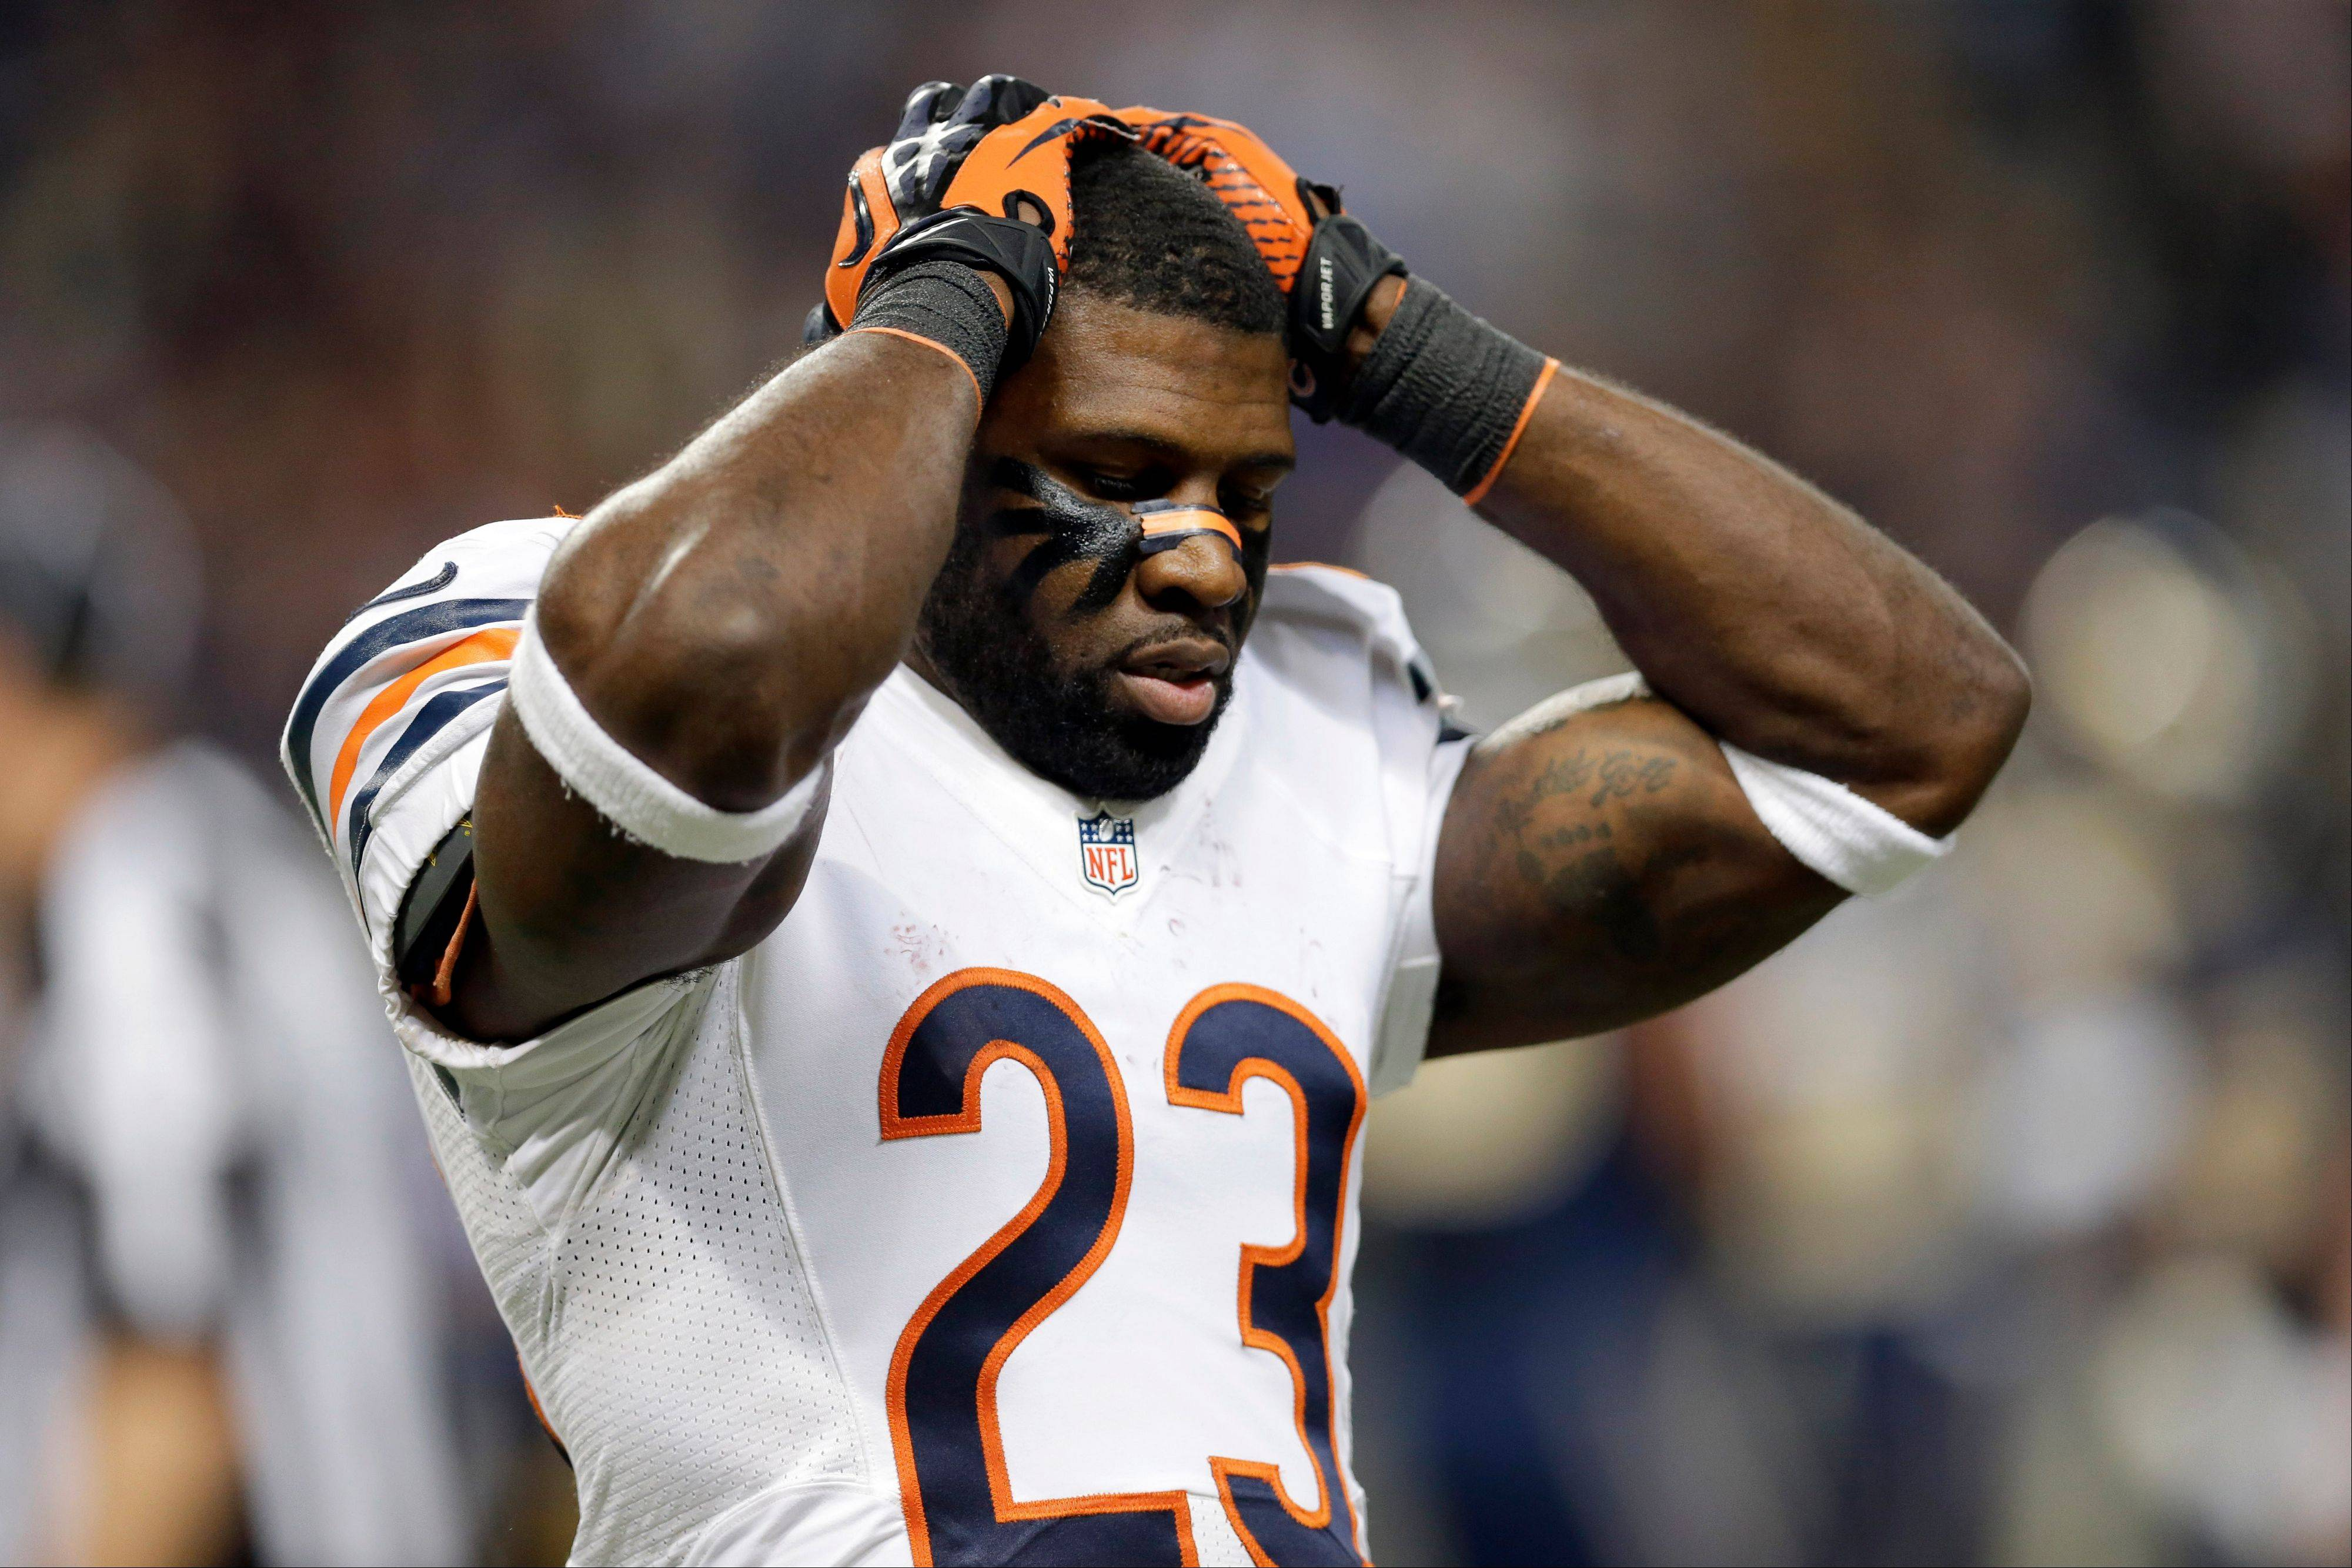 Chicago Bears� Devin Hester reacts after a punt he returned for an apparent touchdown was called back because of an offensive holding penalty during the fourth quarter of an NFL football game against the St. Louis Rams on Sunday, Nov. 24, 2013, in St. Louis.